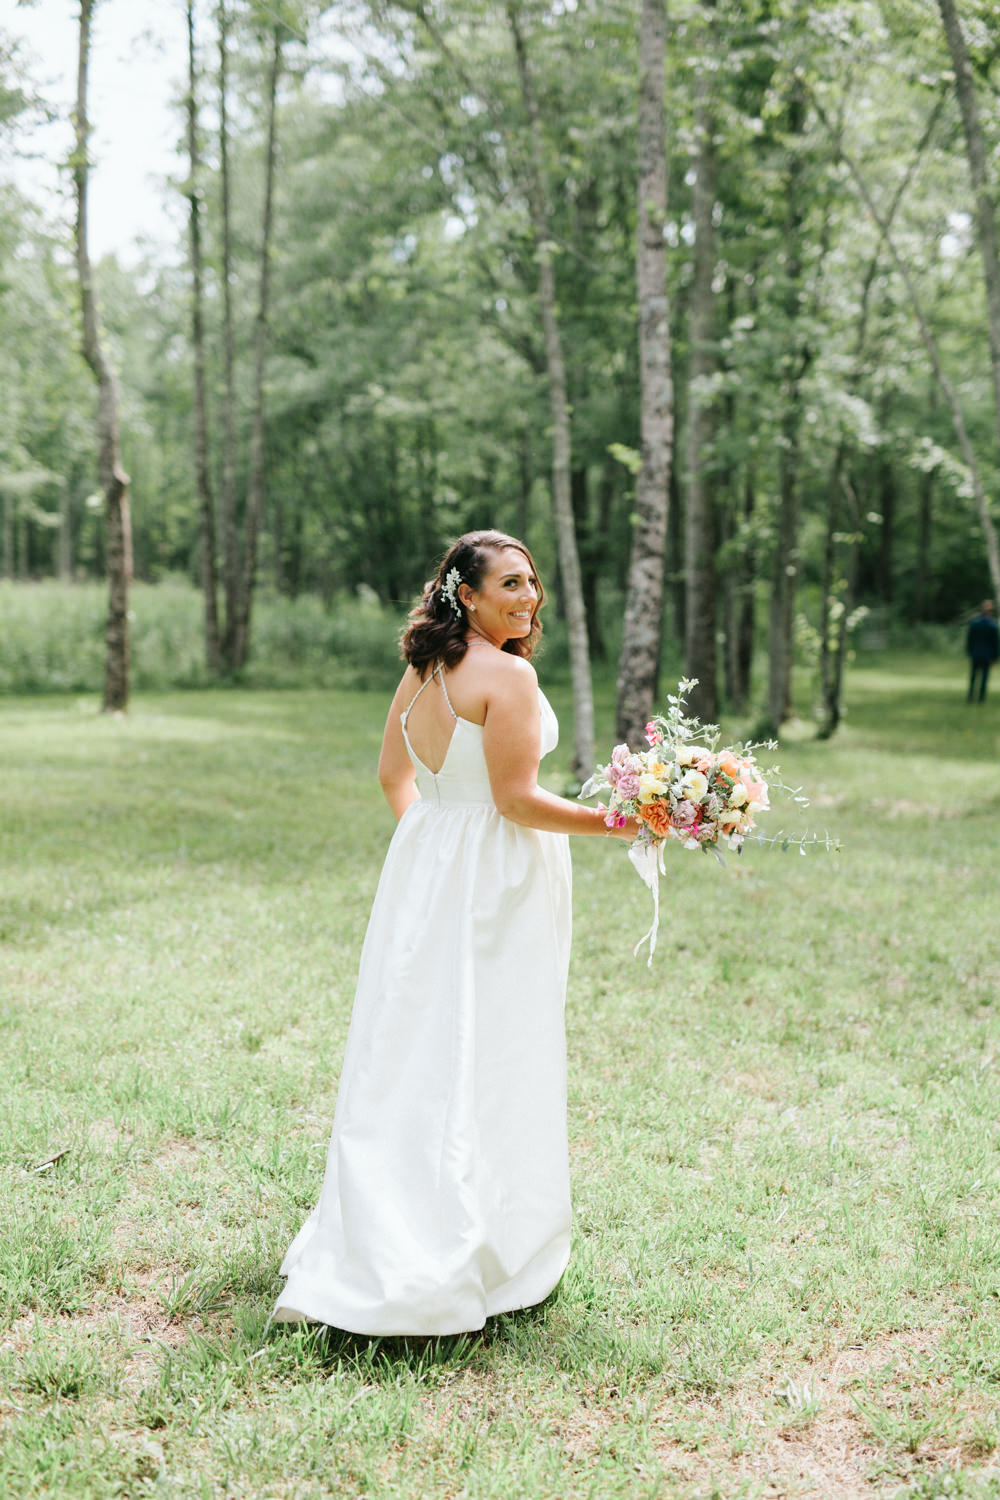 sugarboofarmwedding-2024.jpg